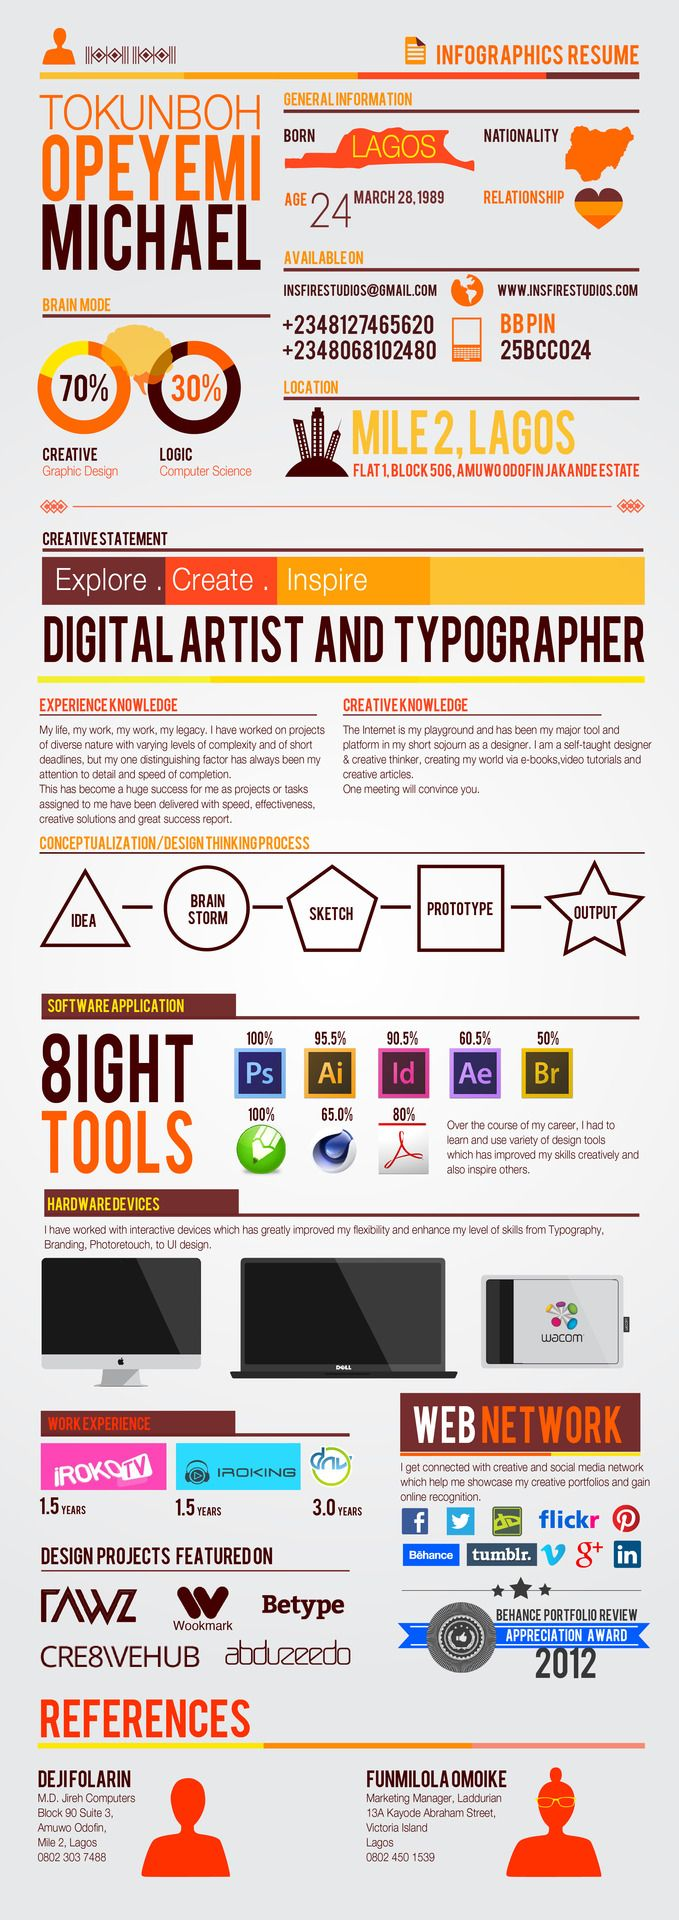 Opposenewapstandardsus  Marvellous  Ideas About Infographic Resume On Pinterest  My Portfolio  With Interesting  Ideas About Infographic Resume On Pinterest  My Portfolio Resume And Resume Design With Easy On The Eye How To Write An Objective In A Resume Also Definition Of A Resume In Addition School Resume Template And Human Resource Generalist Resume As Well As School Psychologist Resume Additionally Fonts To Use For Resume From Pinterestcom With Opposenewapstandardsus  Interesting  Ideas About Infographic Resume On Pinterest  My Portfolio  With Easy On The Eye  Ideas About Infographic Resume On Pinterest  My Portfolio Resume And Resume Design And Marvellous How To Write An Objective In A Resume Also Definition Of A Resume In Addition School Resume Template From Pinterestcom